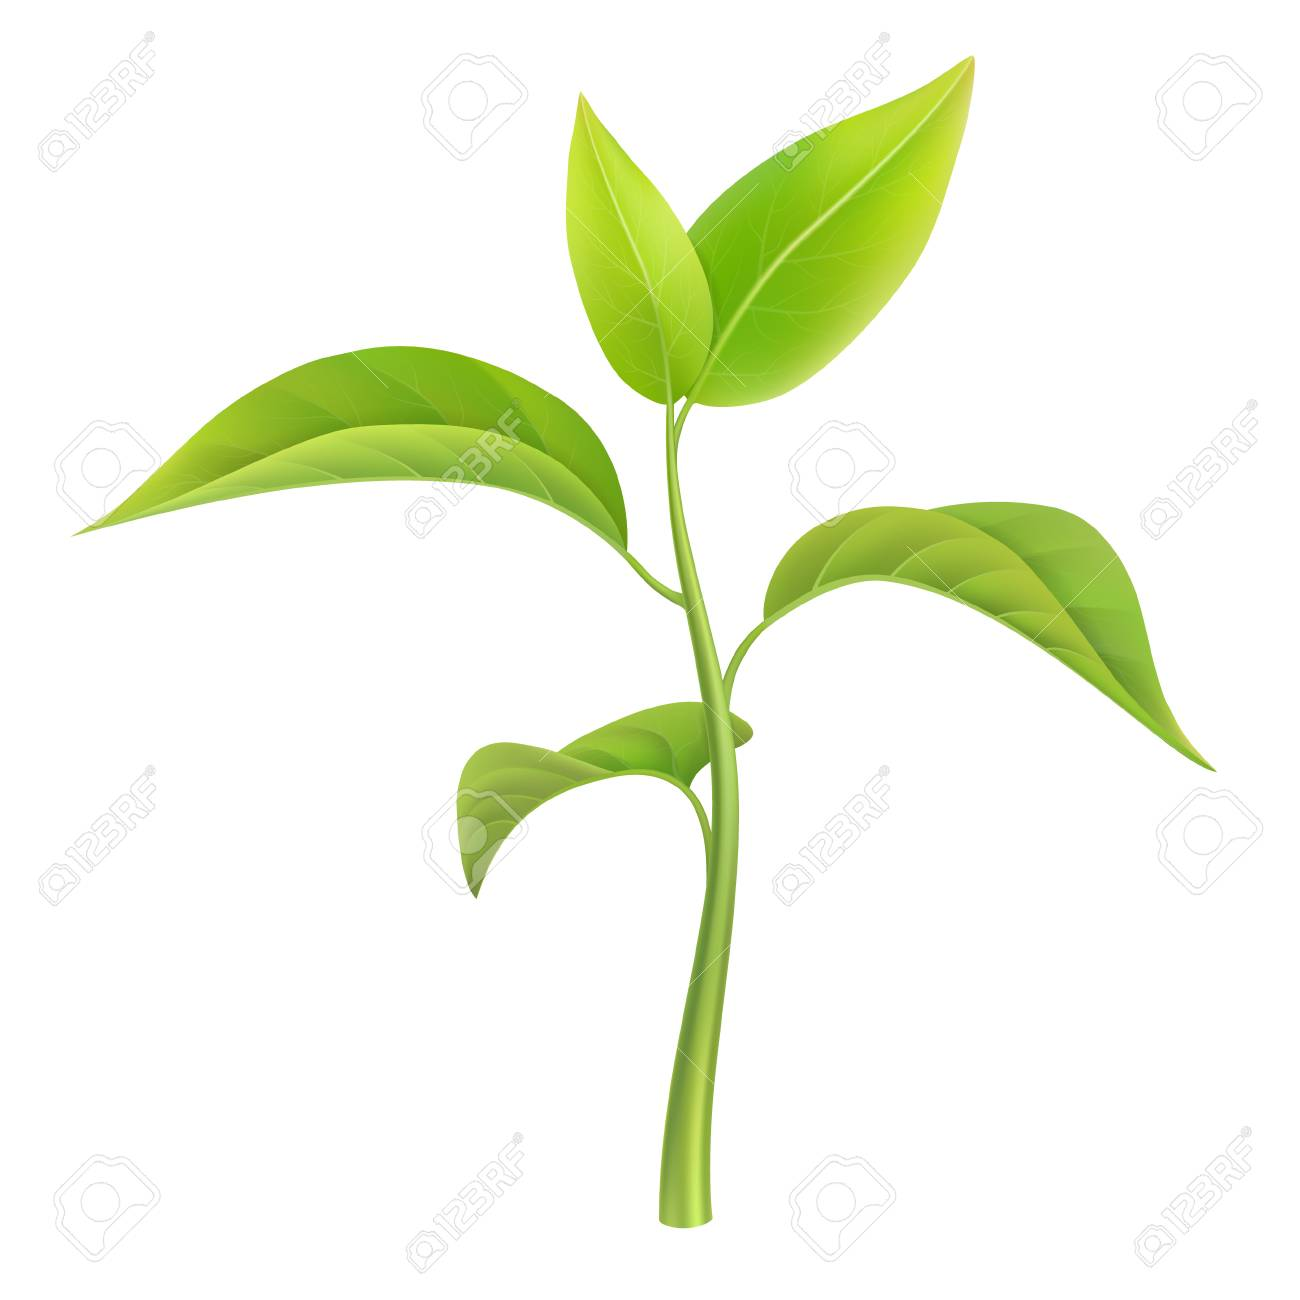 green sprout small branch young plant vector illustration rh 123rf com plant vector free plant vector protection